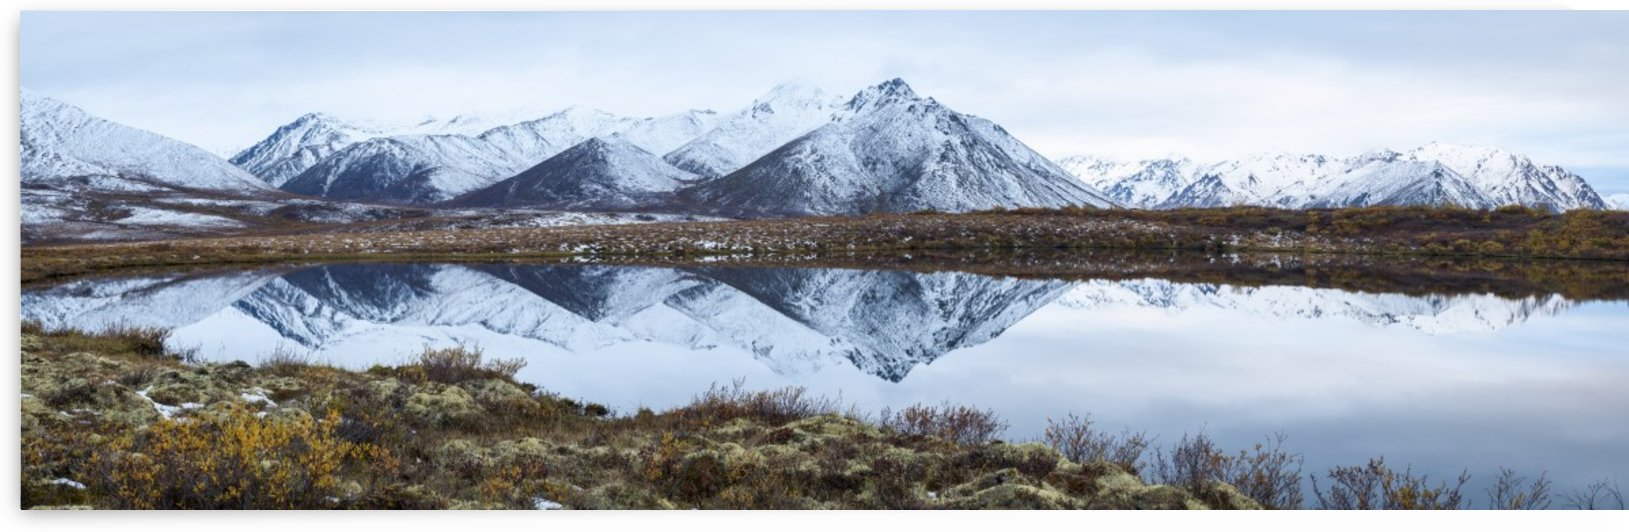 Mount Adney reflected in a pond along the Dempster Highway in the northern Yukon; Yukon, Canada by PacificStock